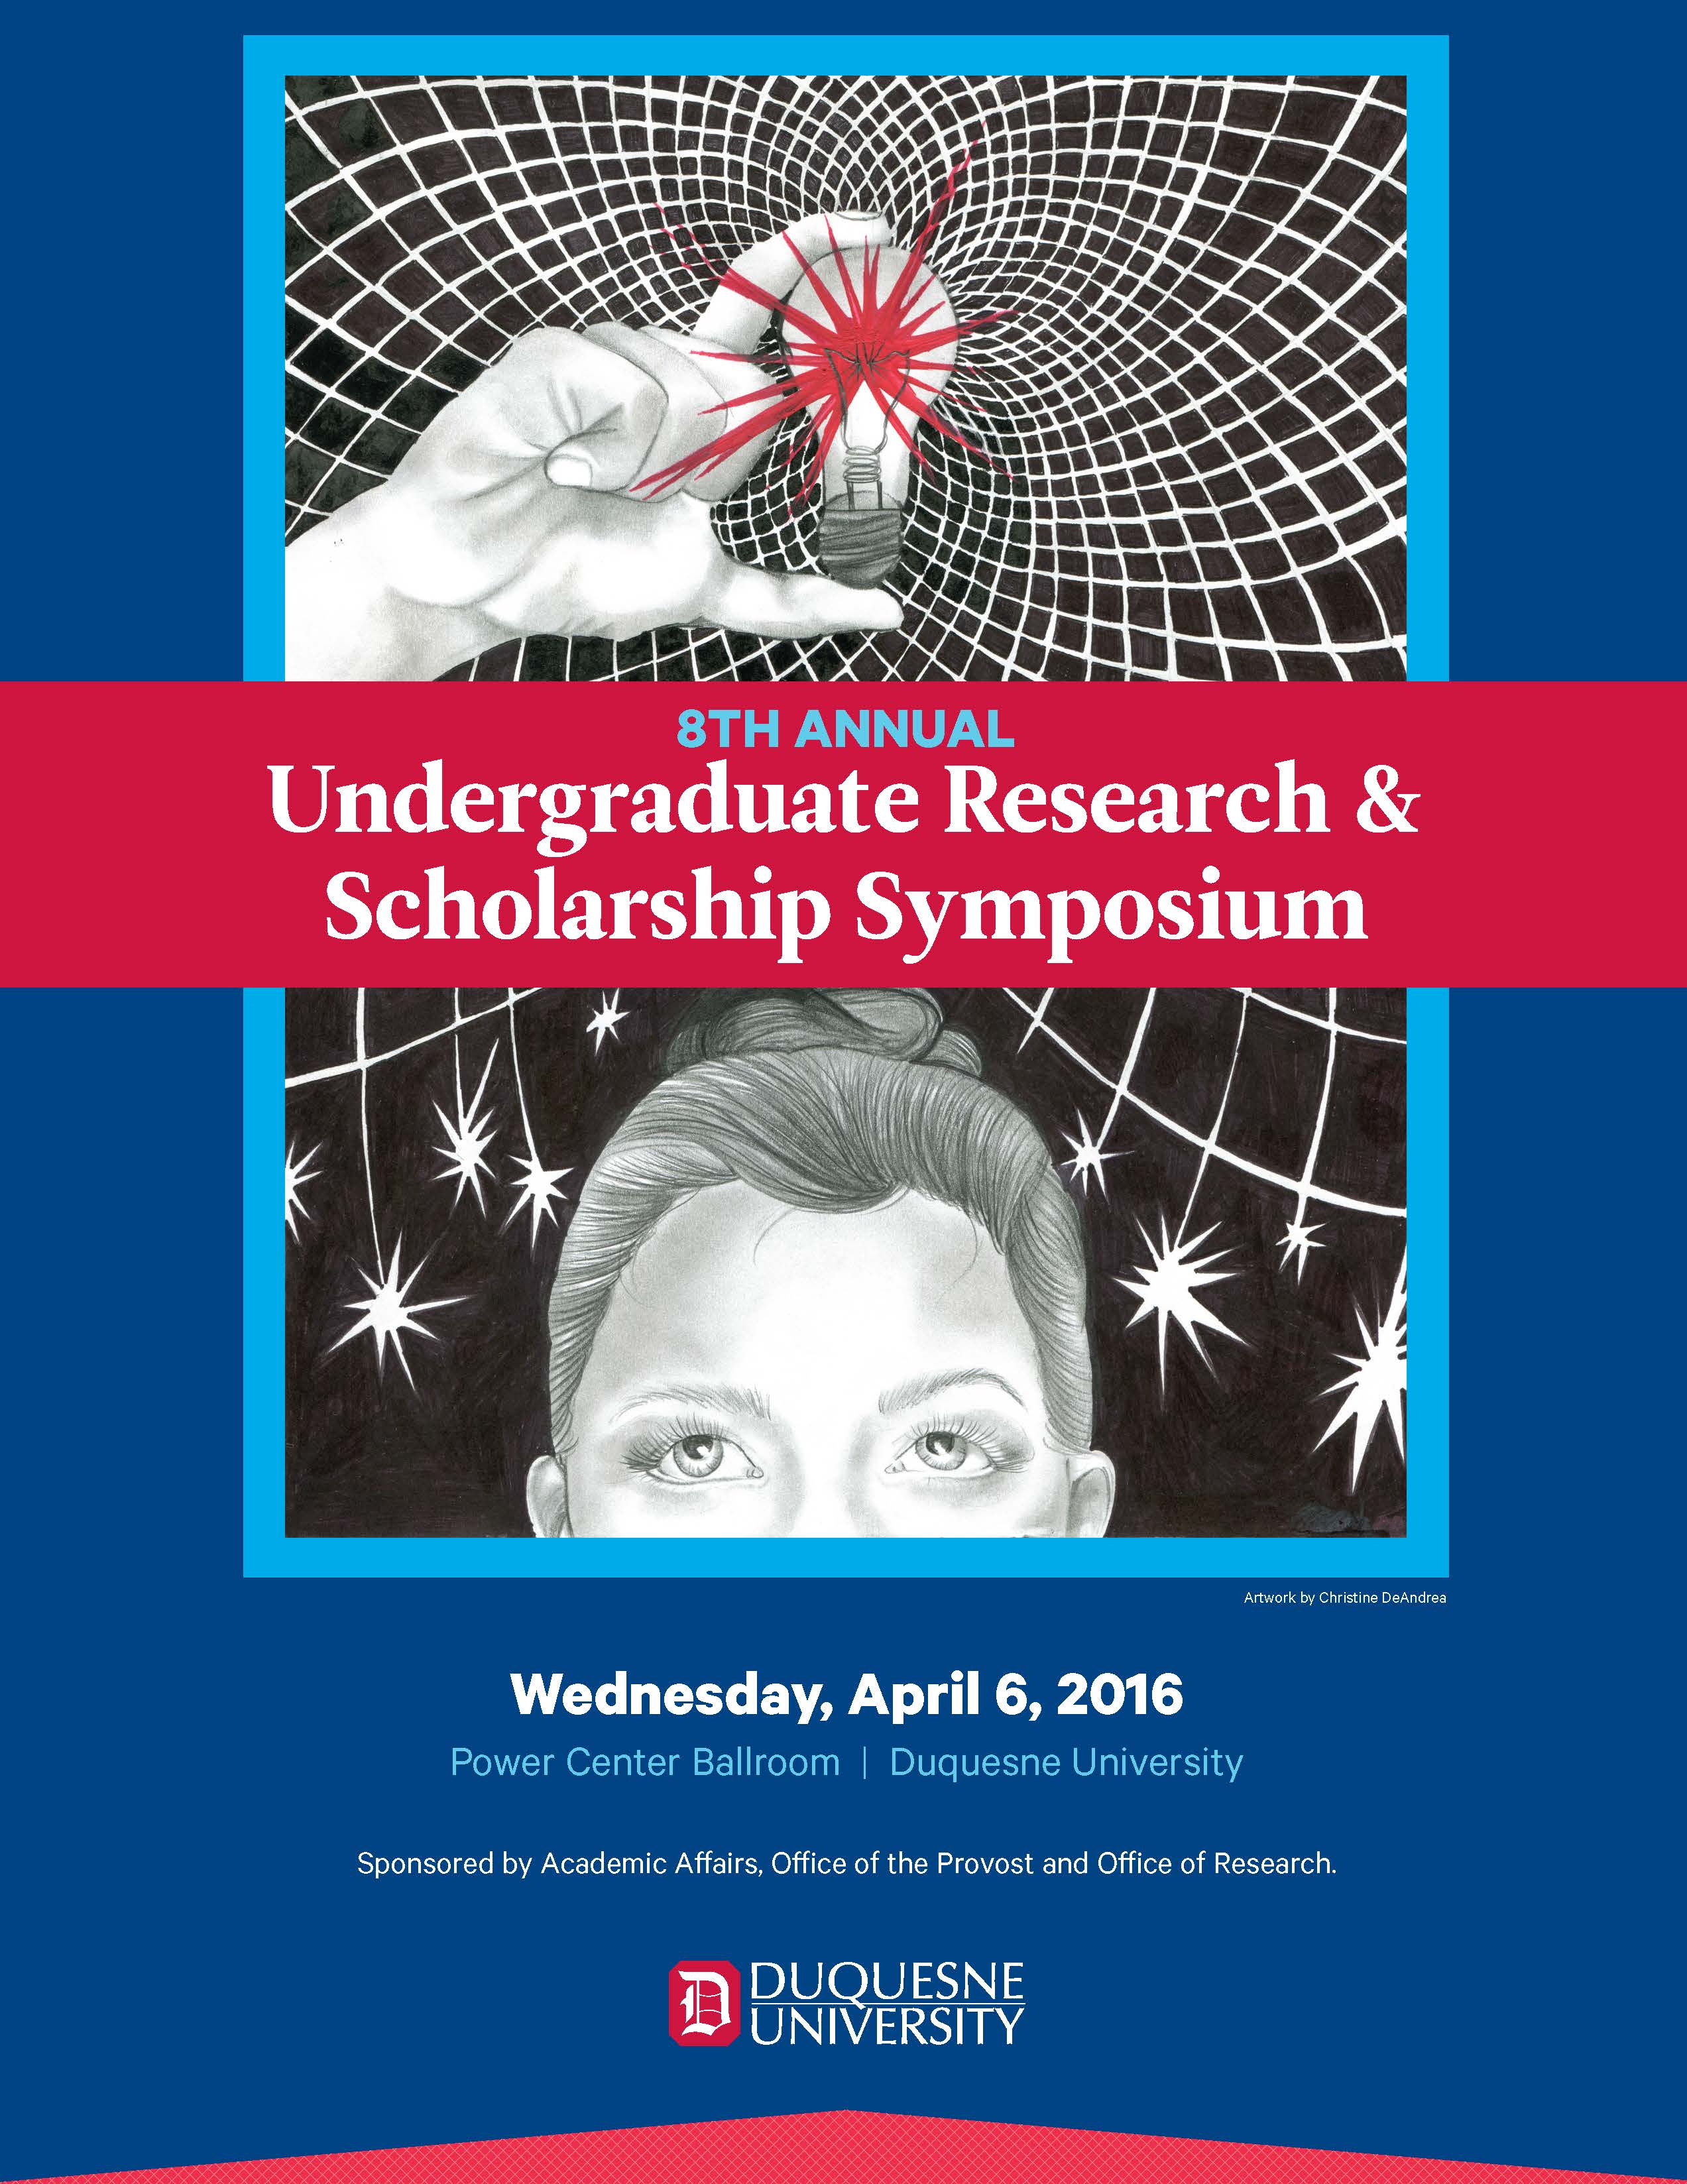 8th Annual Undergraduate Research & Scholarship Symposium